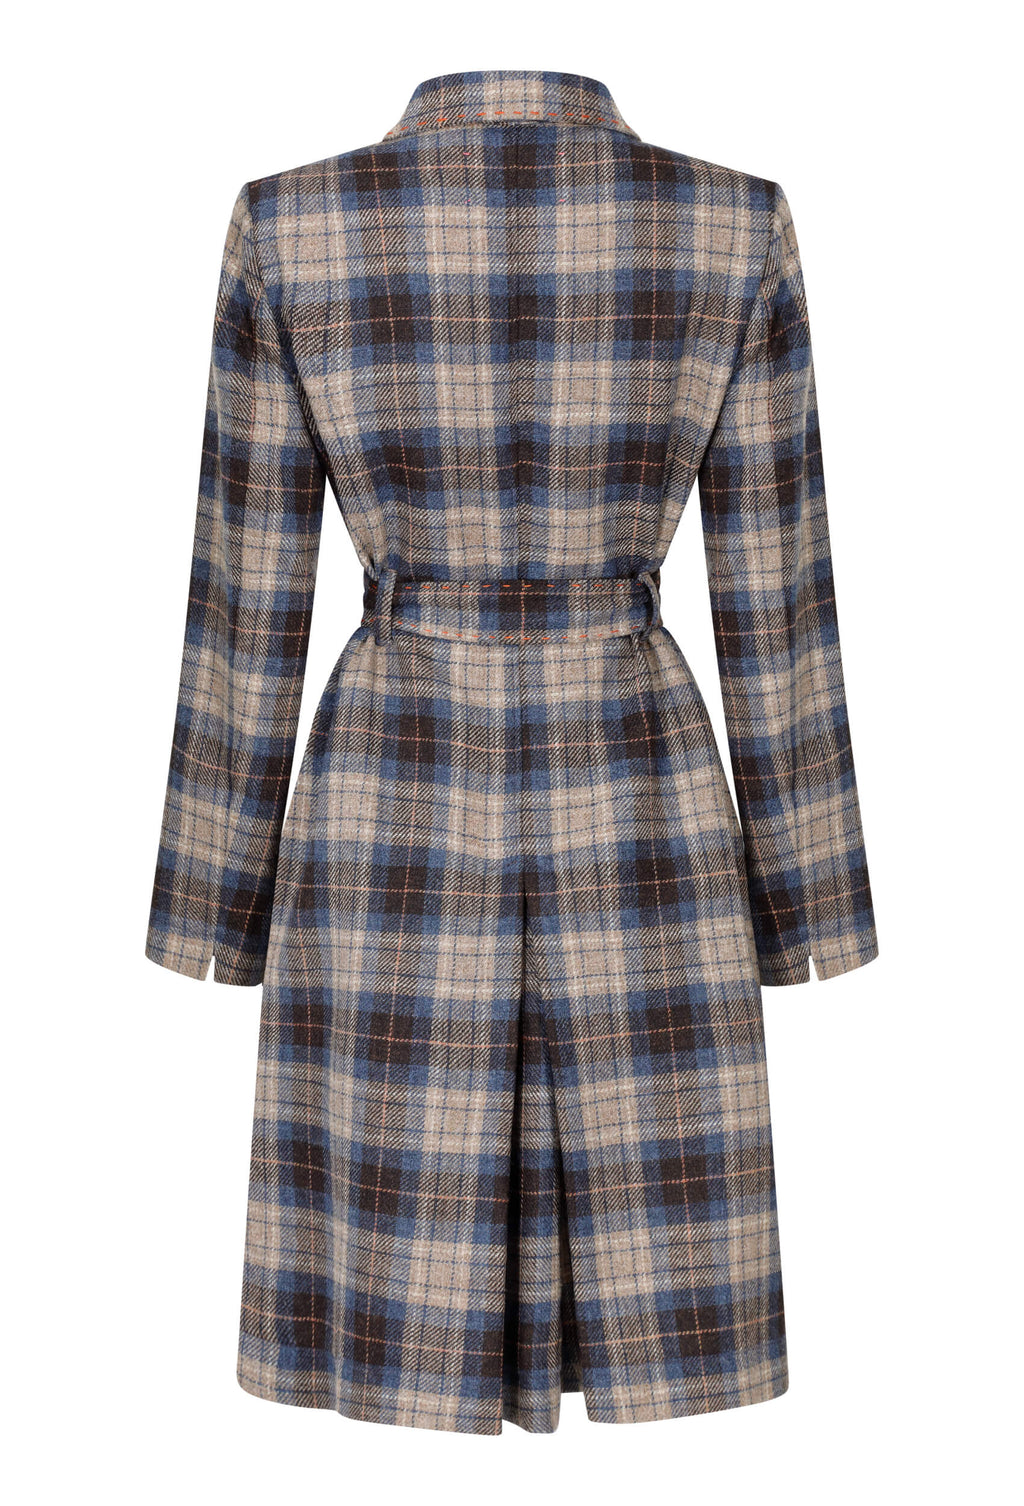 blue-check-tweed-coat-dress